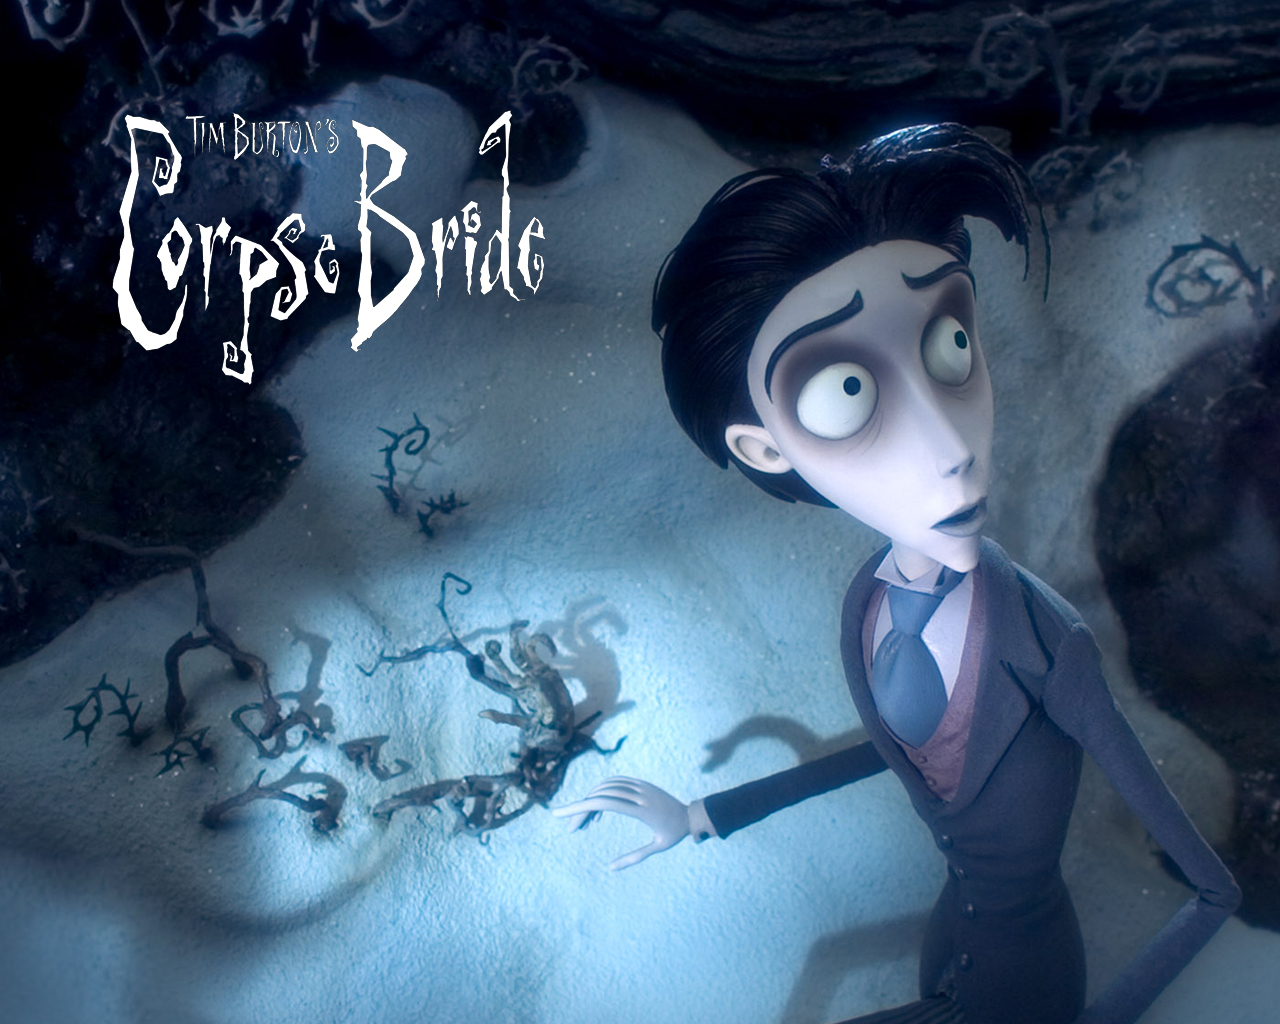 corpse bride movie wallpapers - photo #4